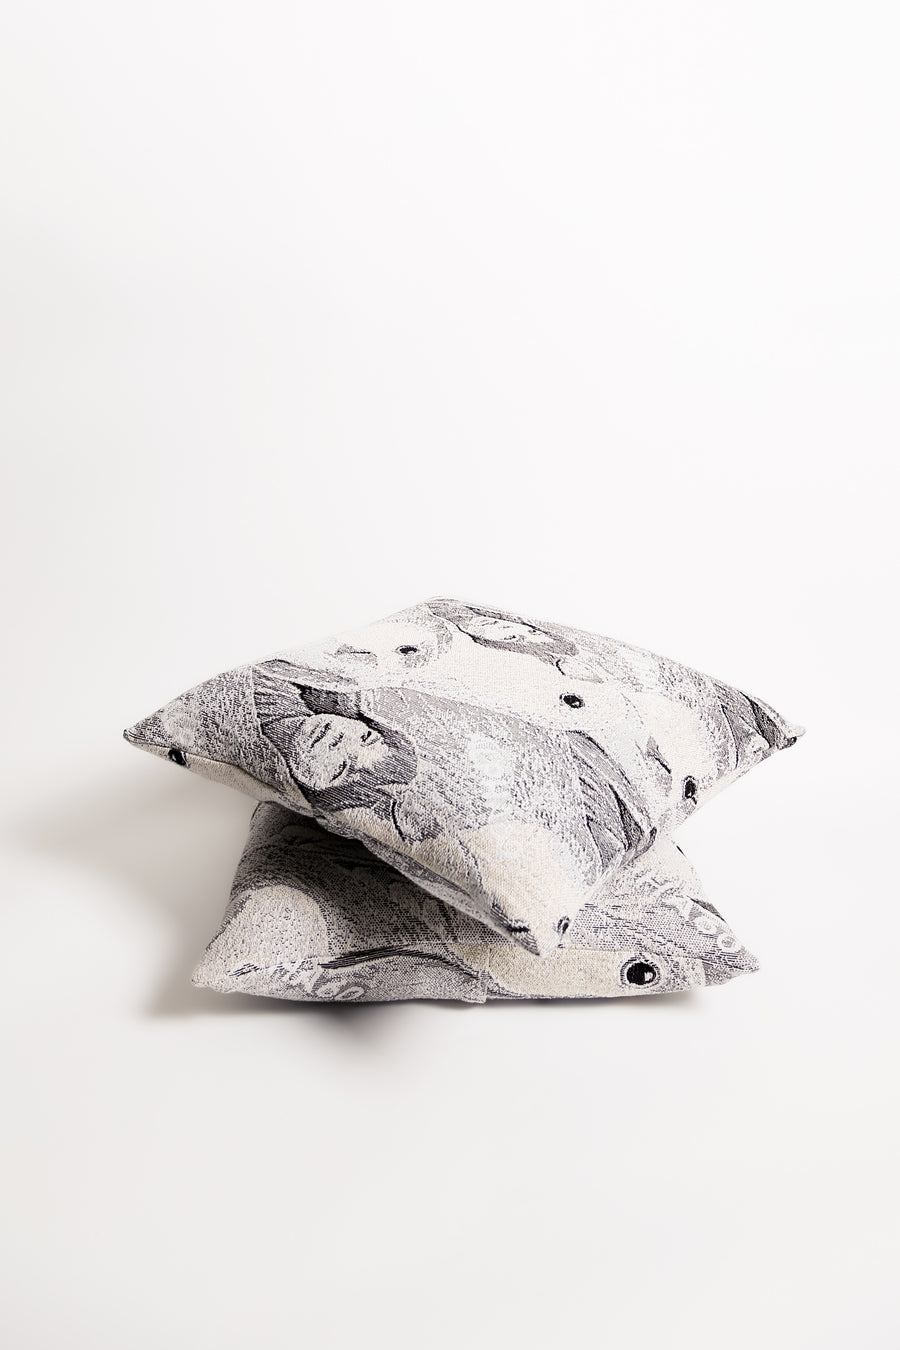 ALPHA60 JACQUARD CUSHION / JACQUARD